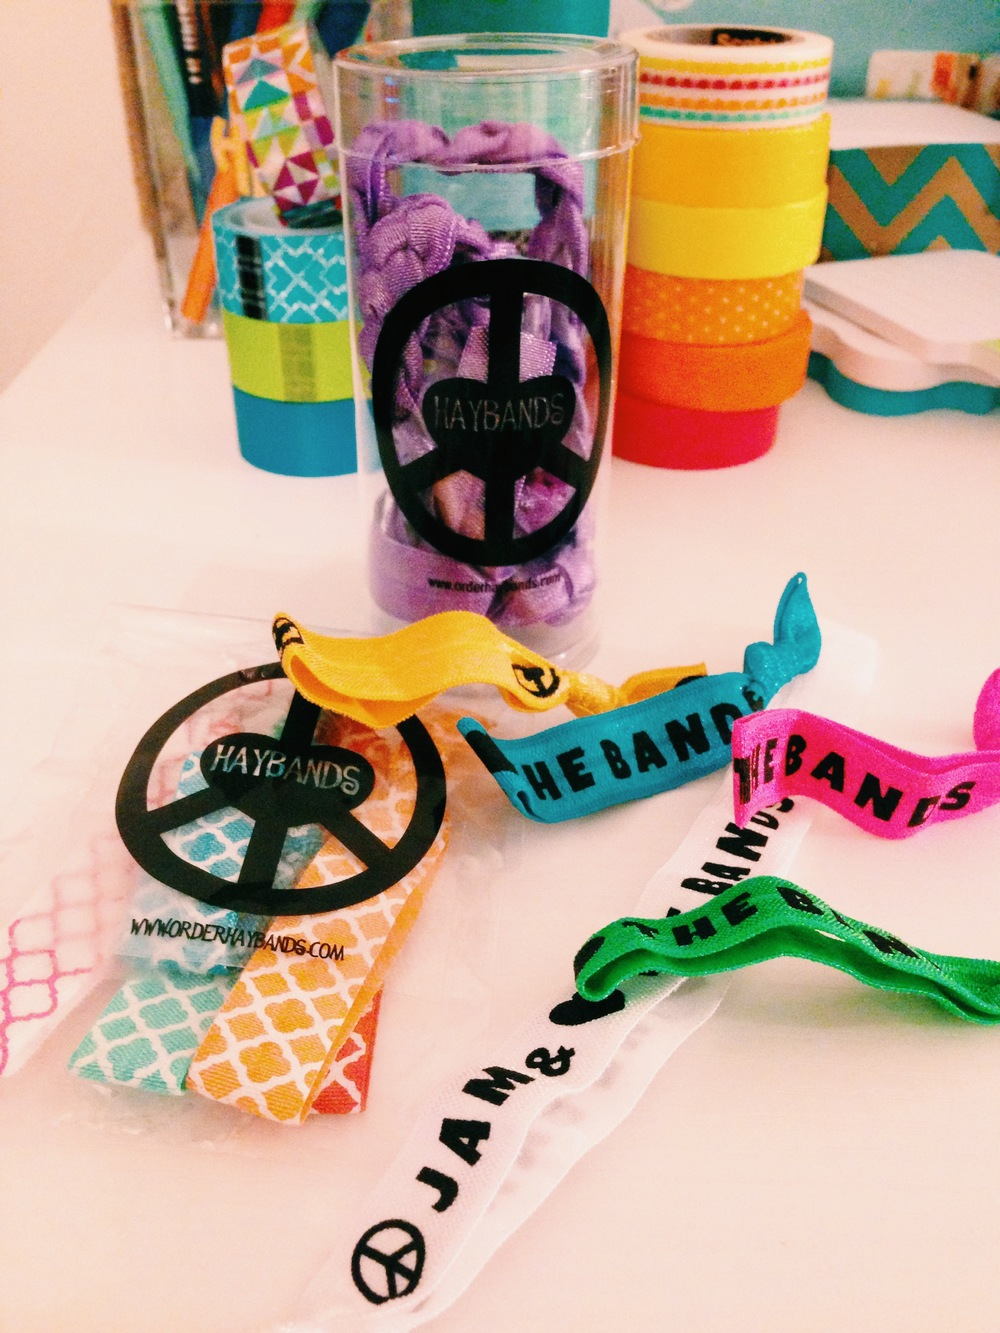 HU Knew Style x Haybands Giveaway Items!!